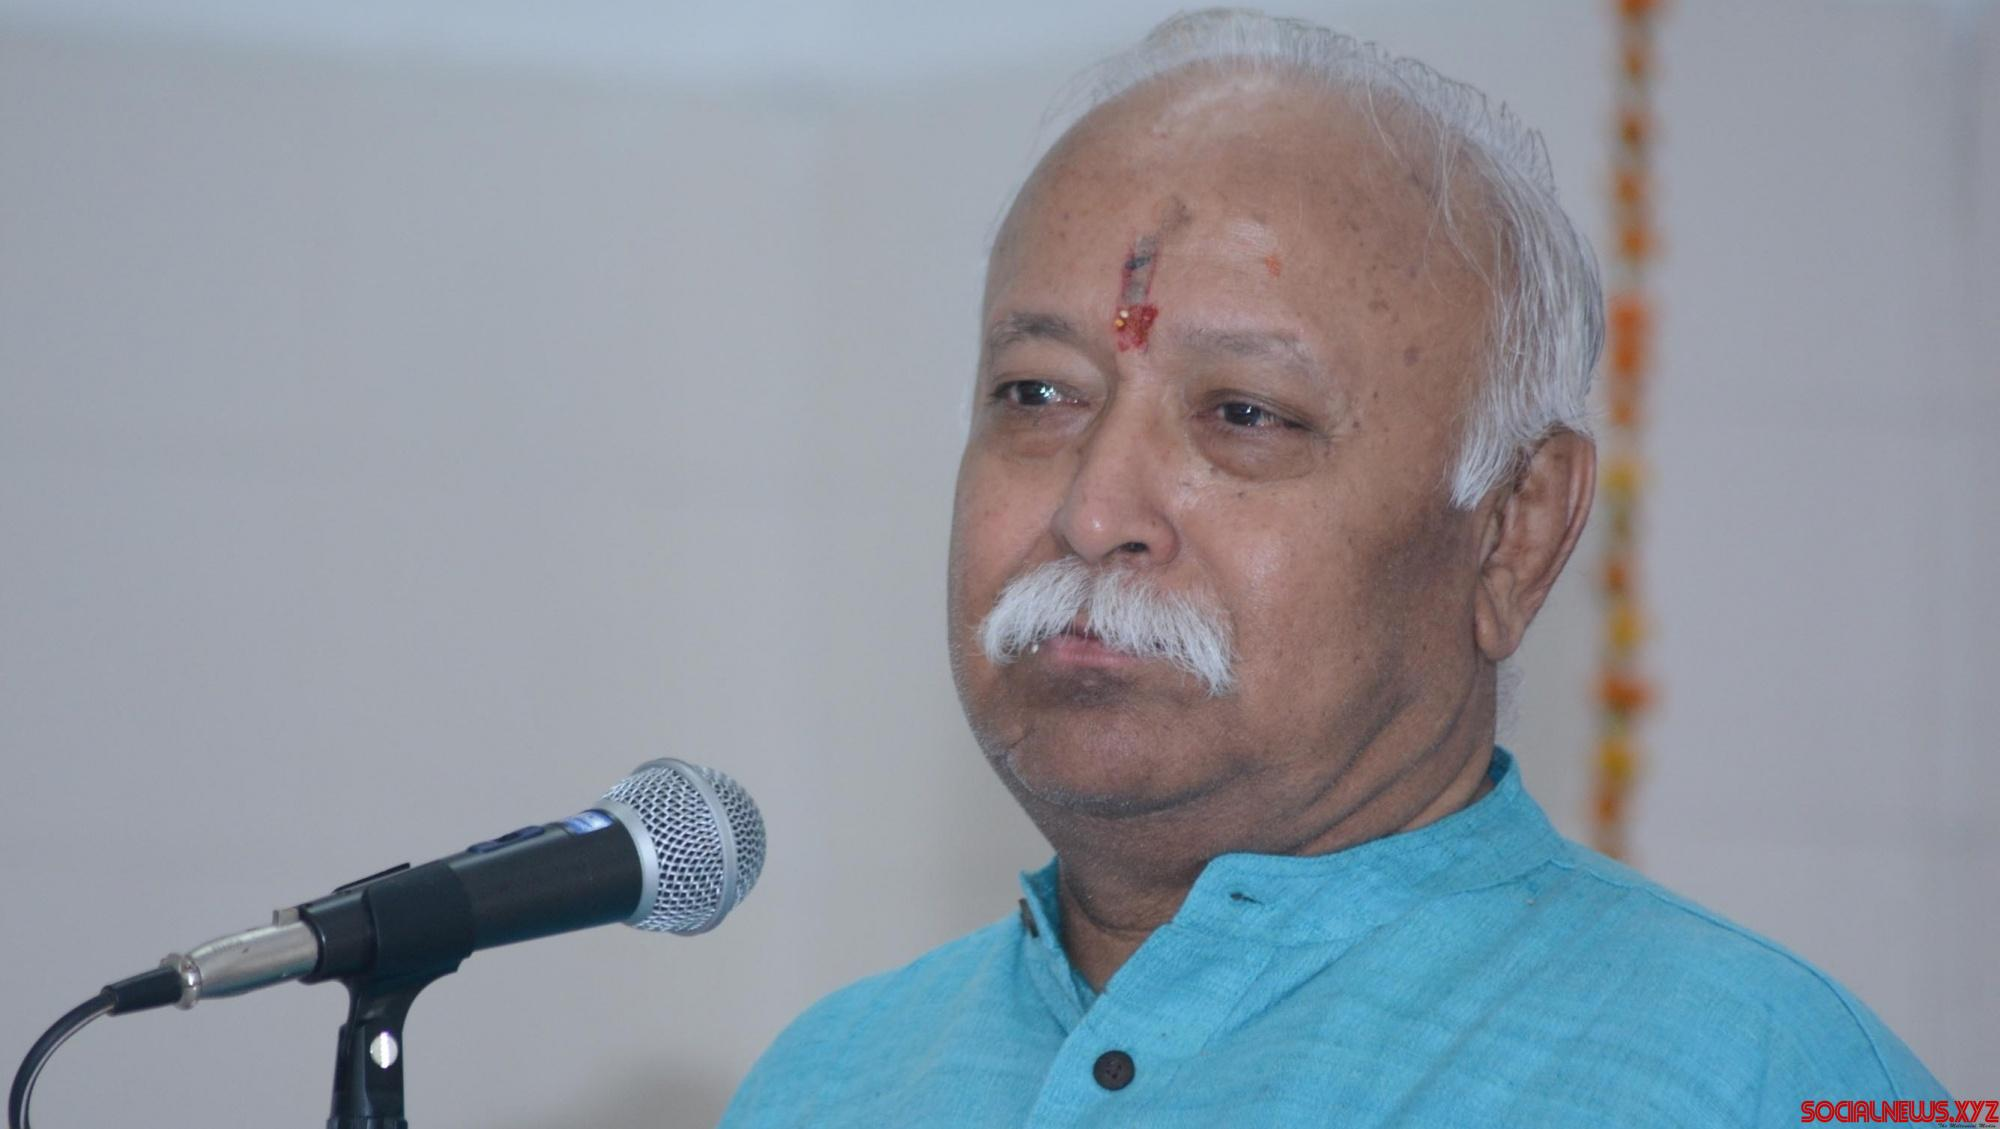 Lack of women's safety is a matter of shame: Bhagwat